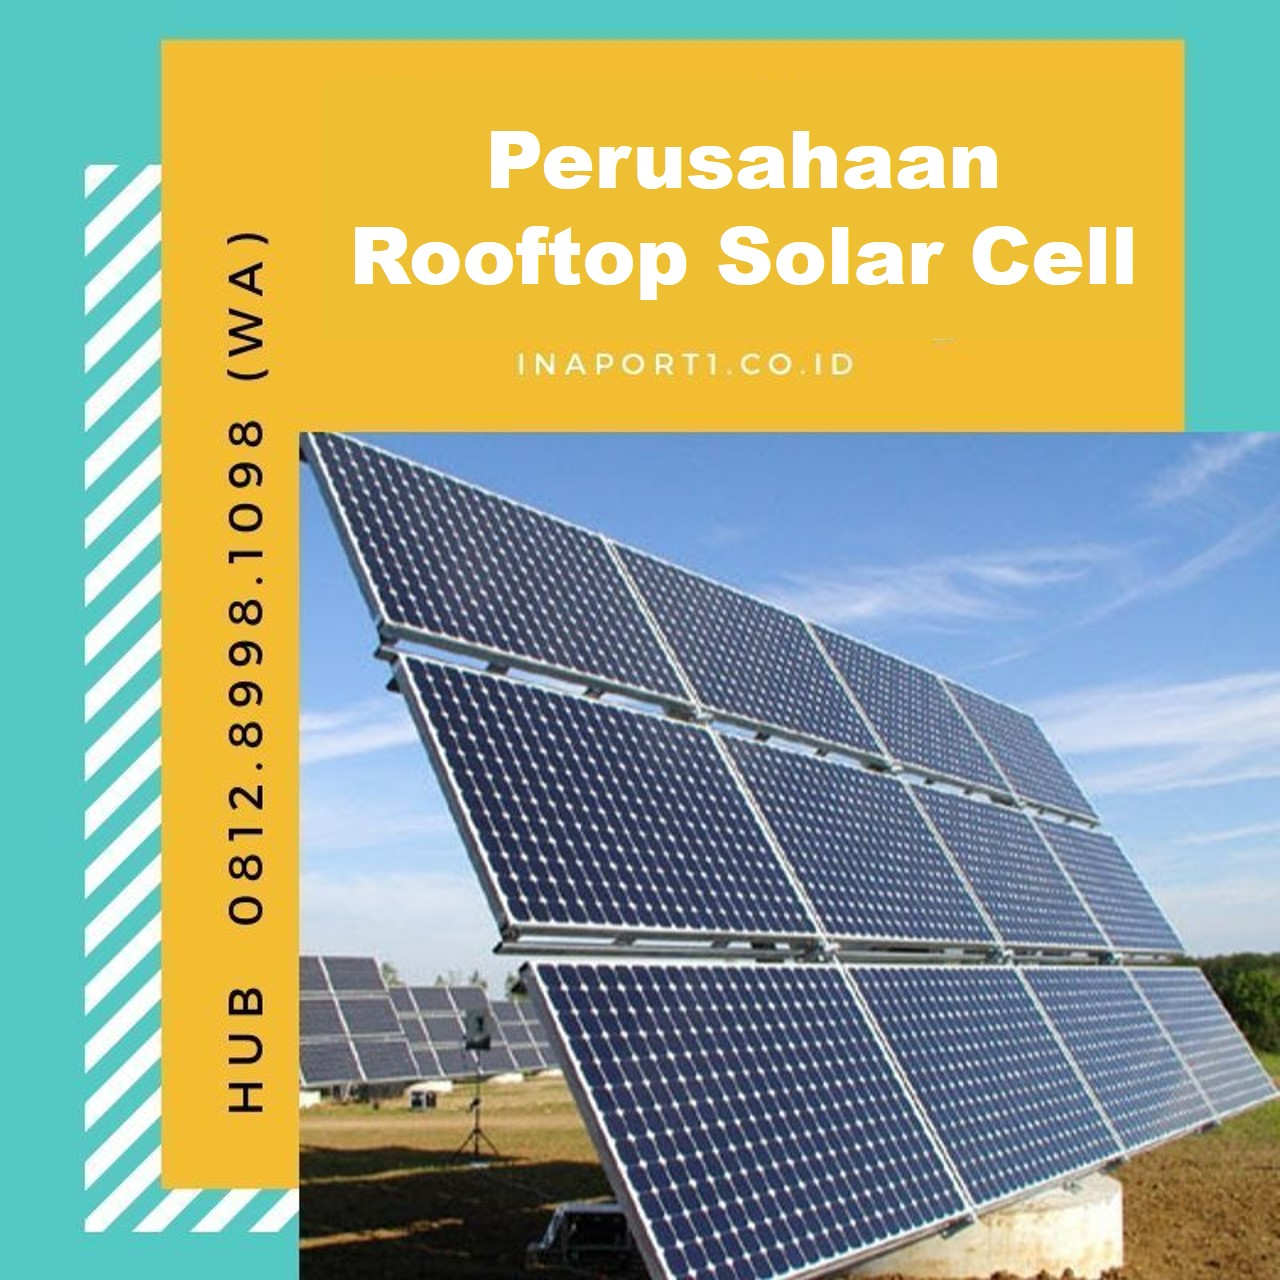 Panel Surya Rooftop Soreang, Rooftop Solar Panel Soreang, Solar Panel On Rooftop Soreang, Solar Panel Rooftop Soreang, Rooftop Panel Surya Soreang, Rooftop Solar Panel Indonesia Soreang, Rooftop Panel Surya Rumah Soreang, Rooftop Panel Surya Pabrik Soreang, Rooftop Panel Surya Perusahaan Soreang, Rooftop Panel Surya Apartemen Soreang, Rooftop Panel Surya Apartment Soreang, Rooftop Panel Surya Perumahan Soreang, Rooftop Solar Panel Rumah Soreang, Rooftop Solar Panel Pabrik Soreang, Rooftop Solar Panel Perusahaan Soreang, Rooftop Solar Panel Apartemen Soreang, Rooftop Solar Panel Apartment Soreang, Rooftop Solar Panel Perumahan} Soreang